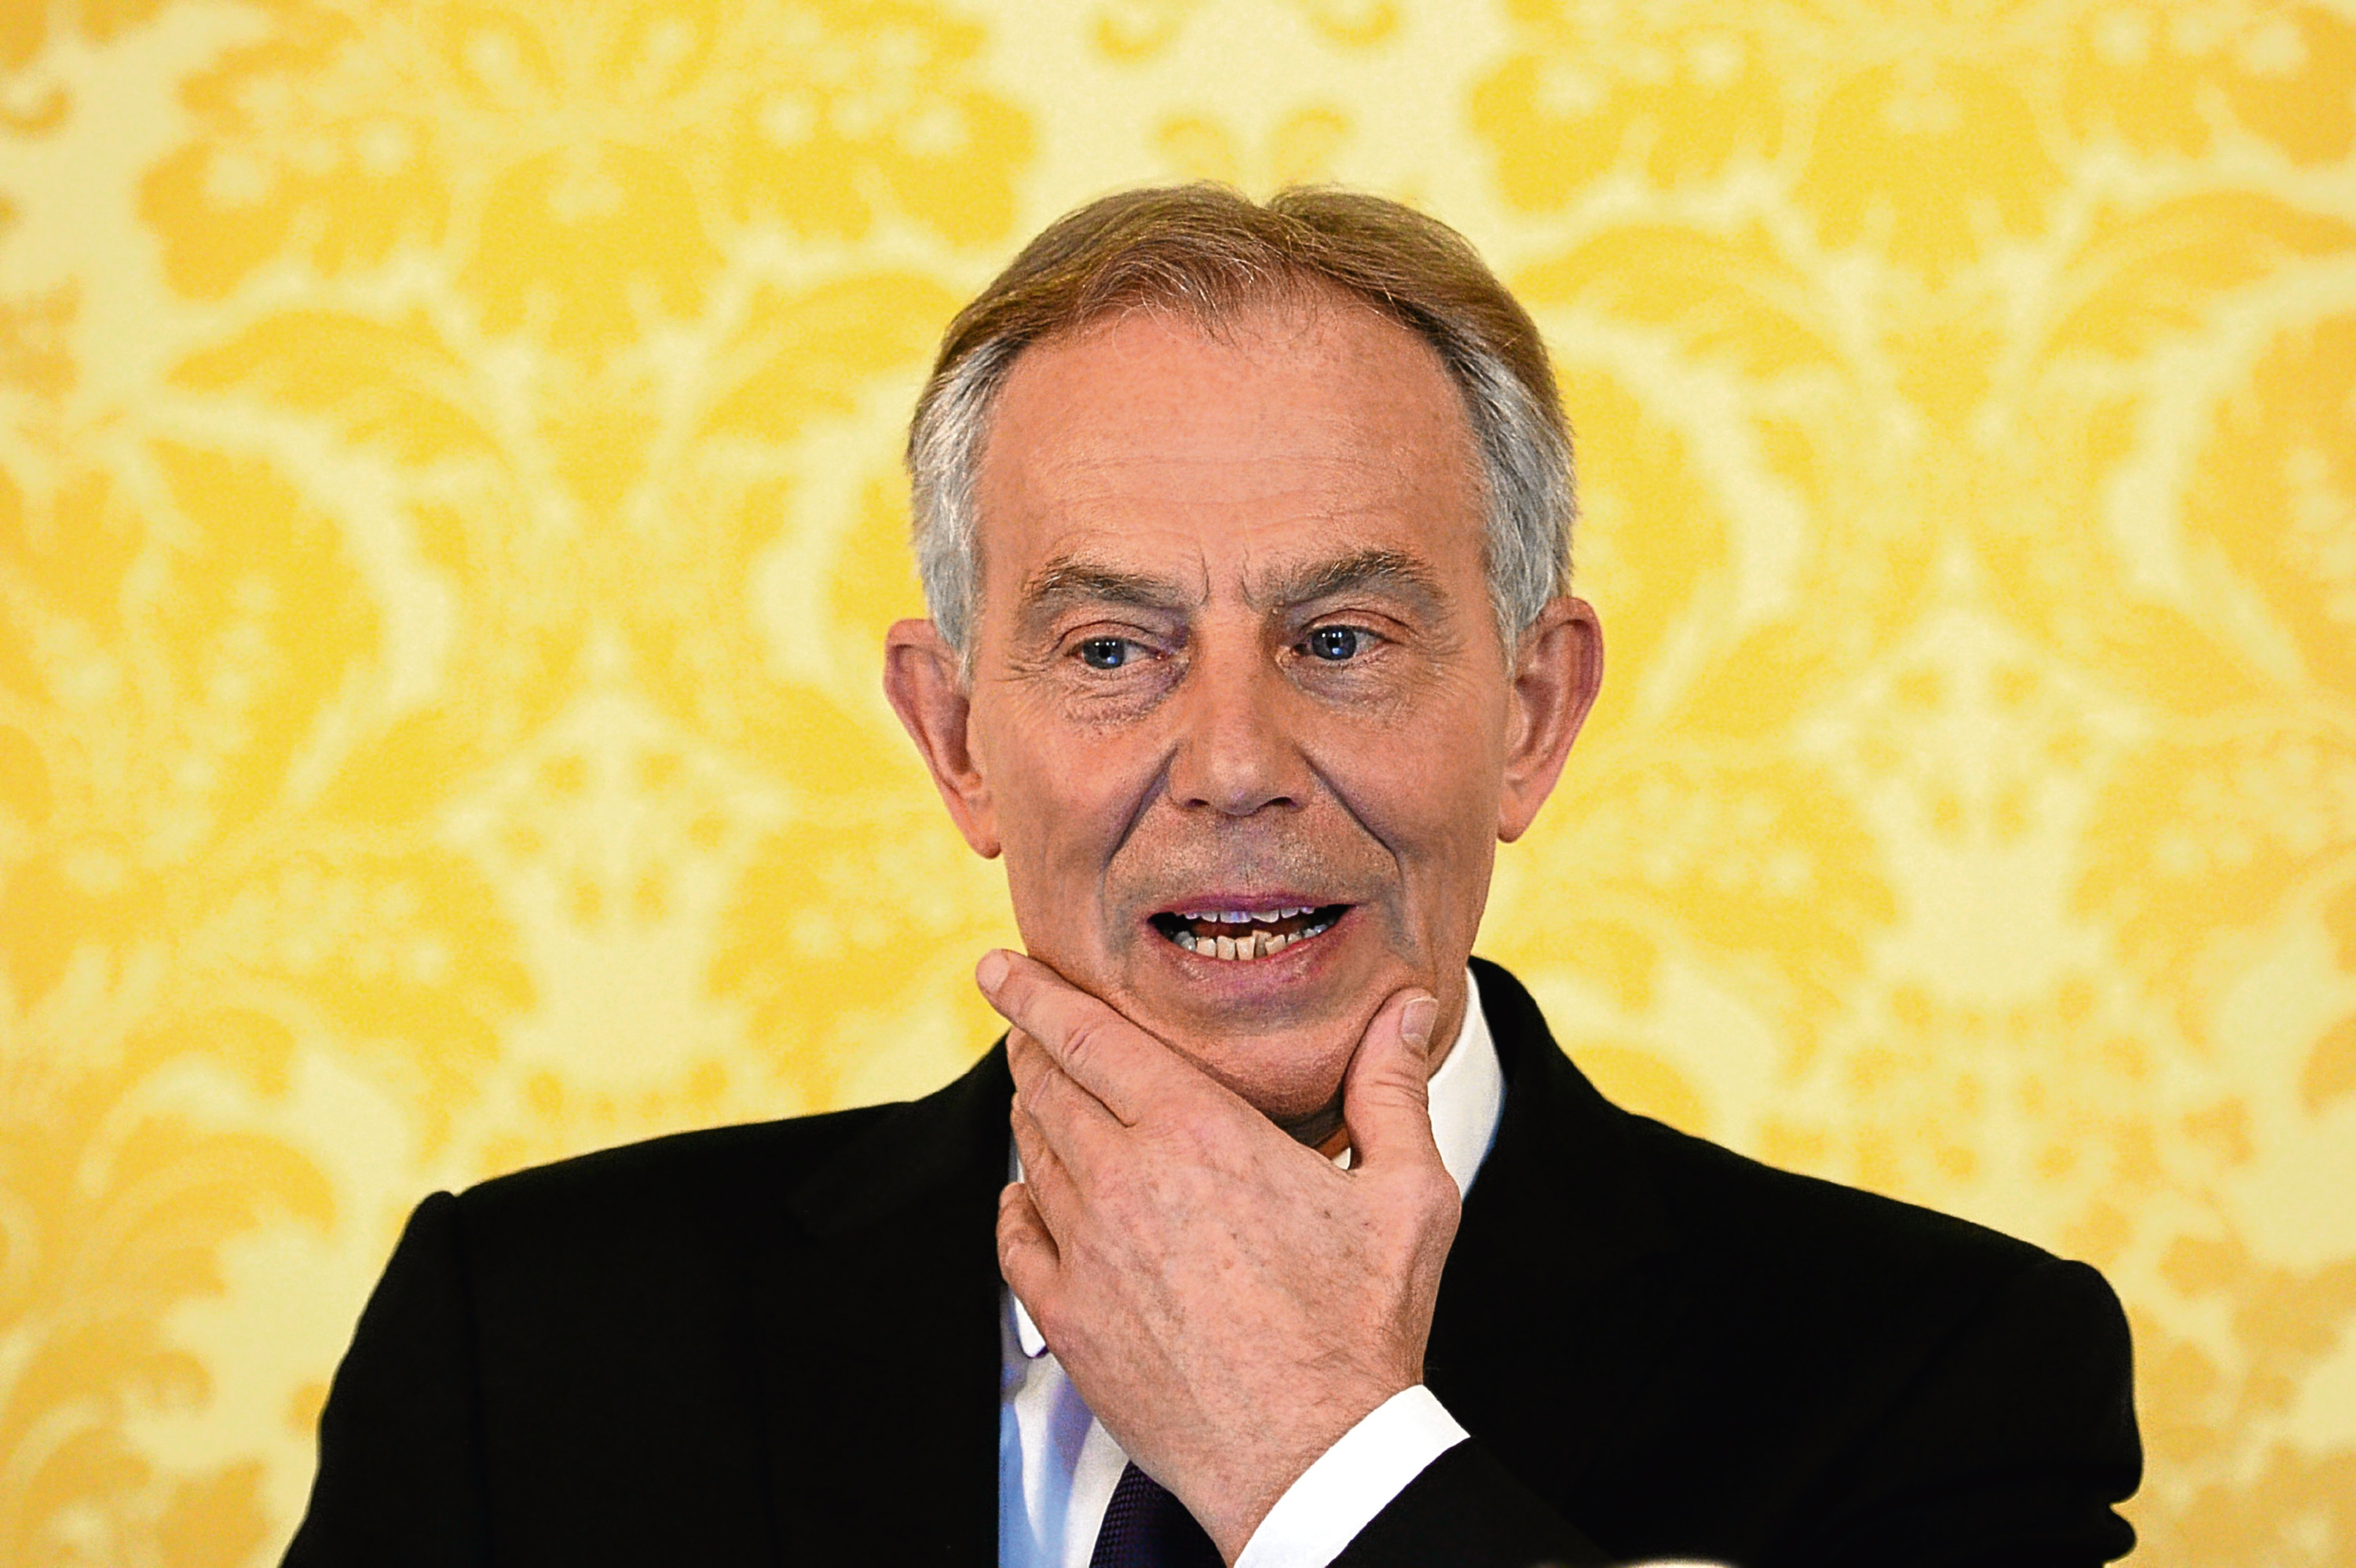 Former Prime Minister Tony Blair holds a press conference at Admiralty House, London (Stefan Rousseau/PA Wire)